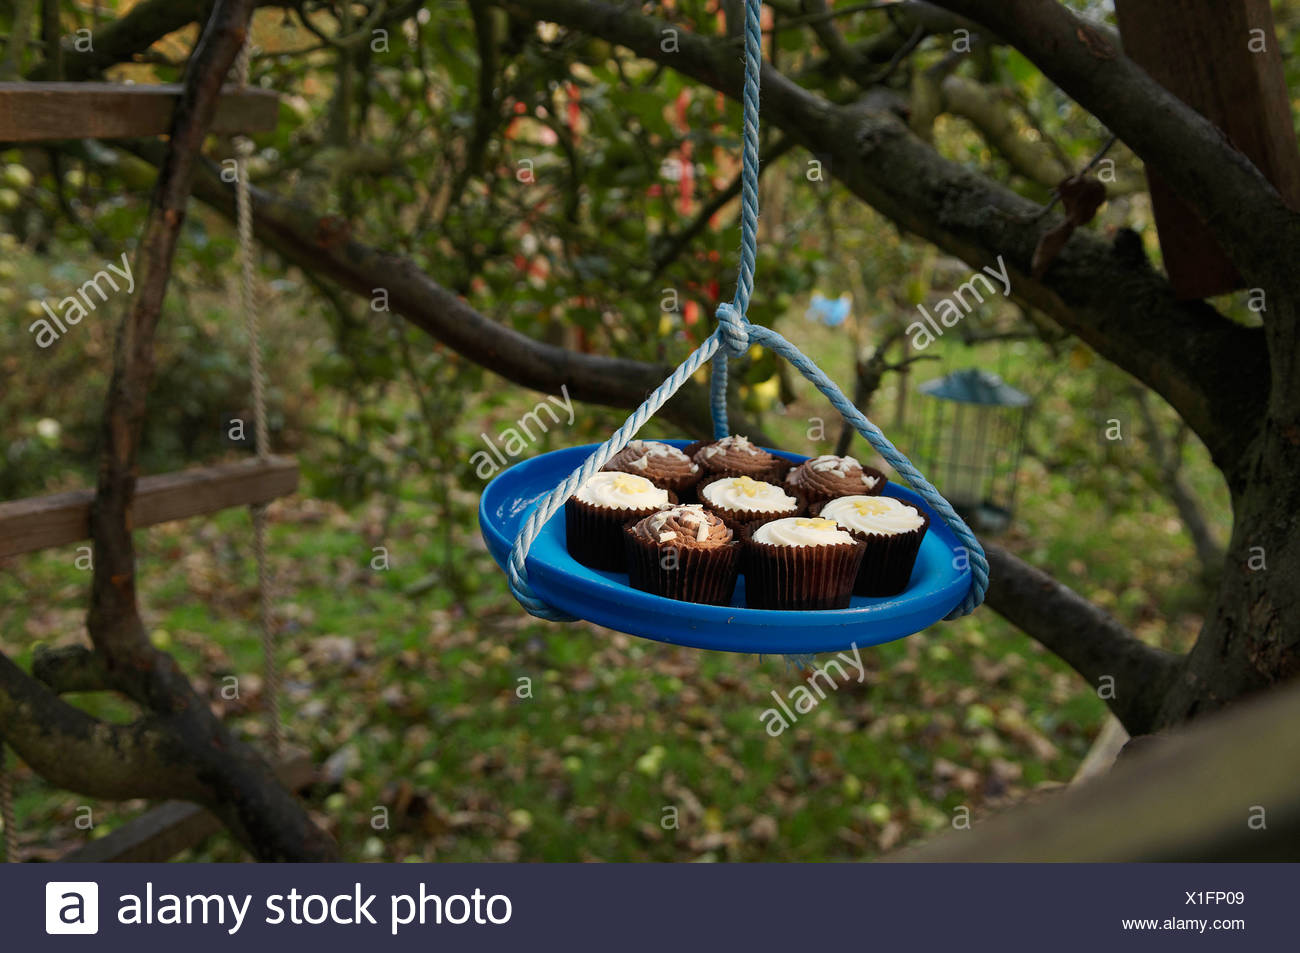 Lifting cupcakes to treehouse - Stock Image